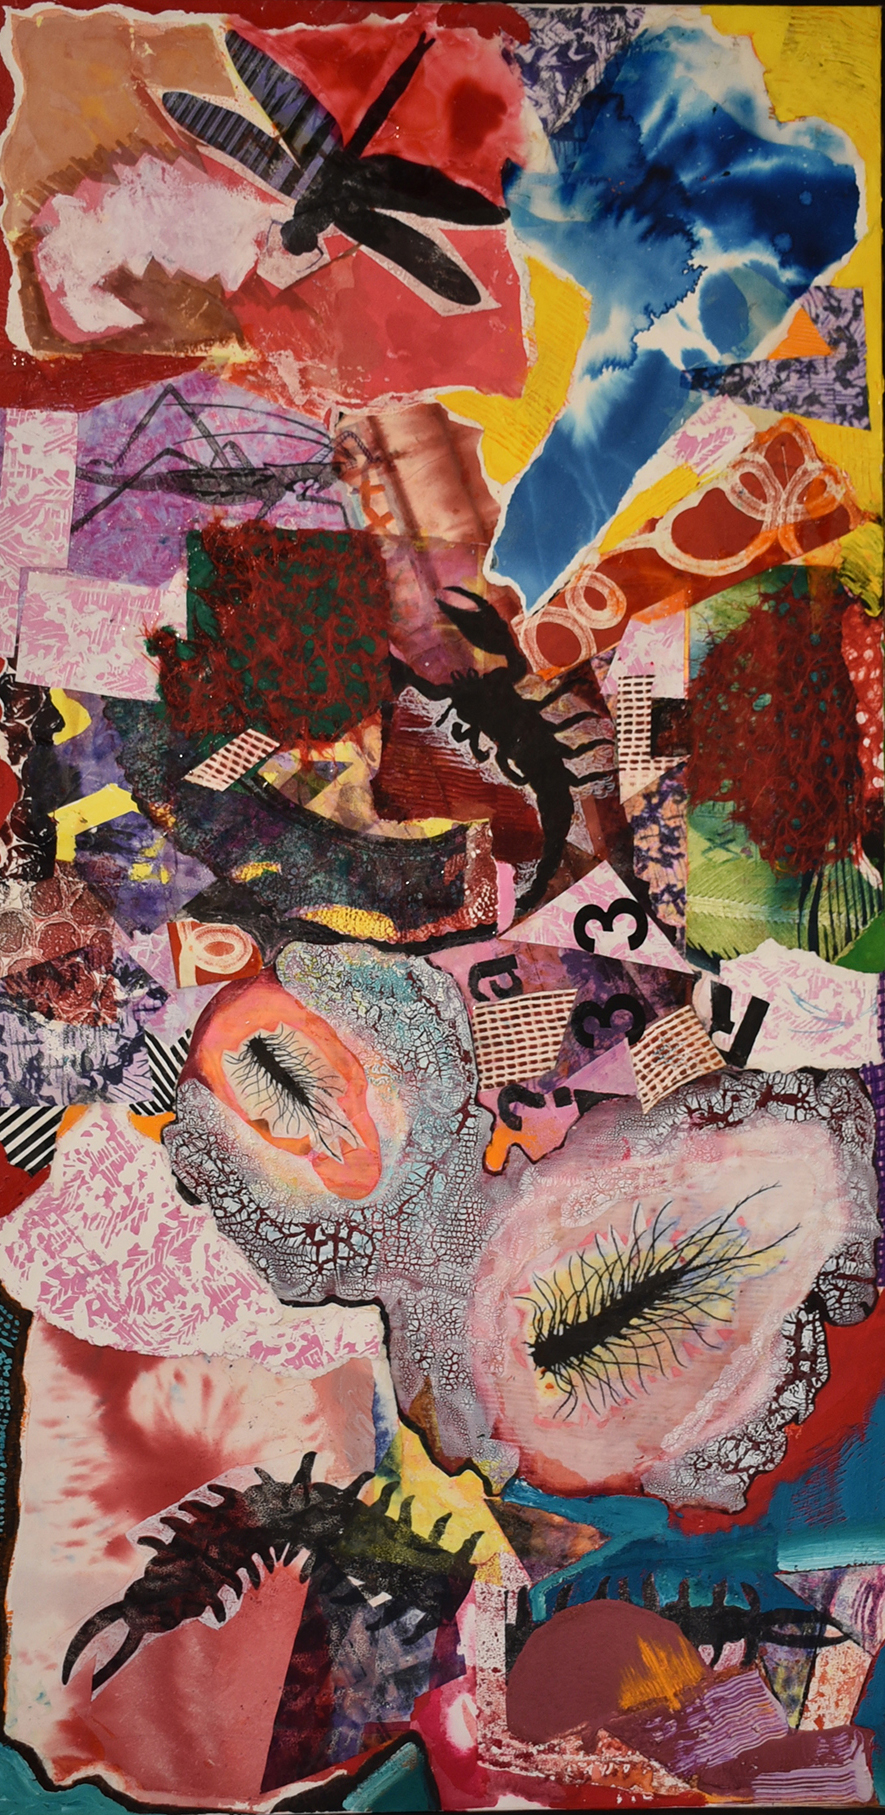 Cari Rosmarin Life Forms 2017 Mixed Media on Canvas 50 x 21 ½ inches $1,500, low res.jpg